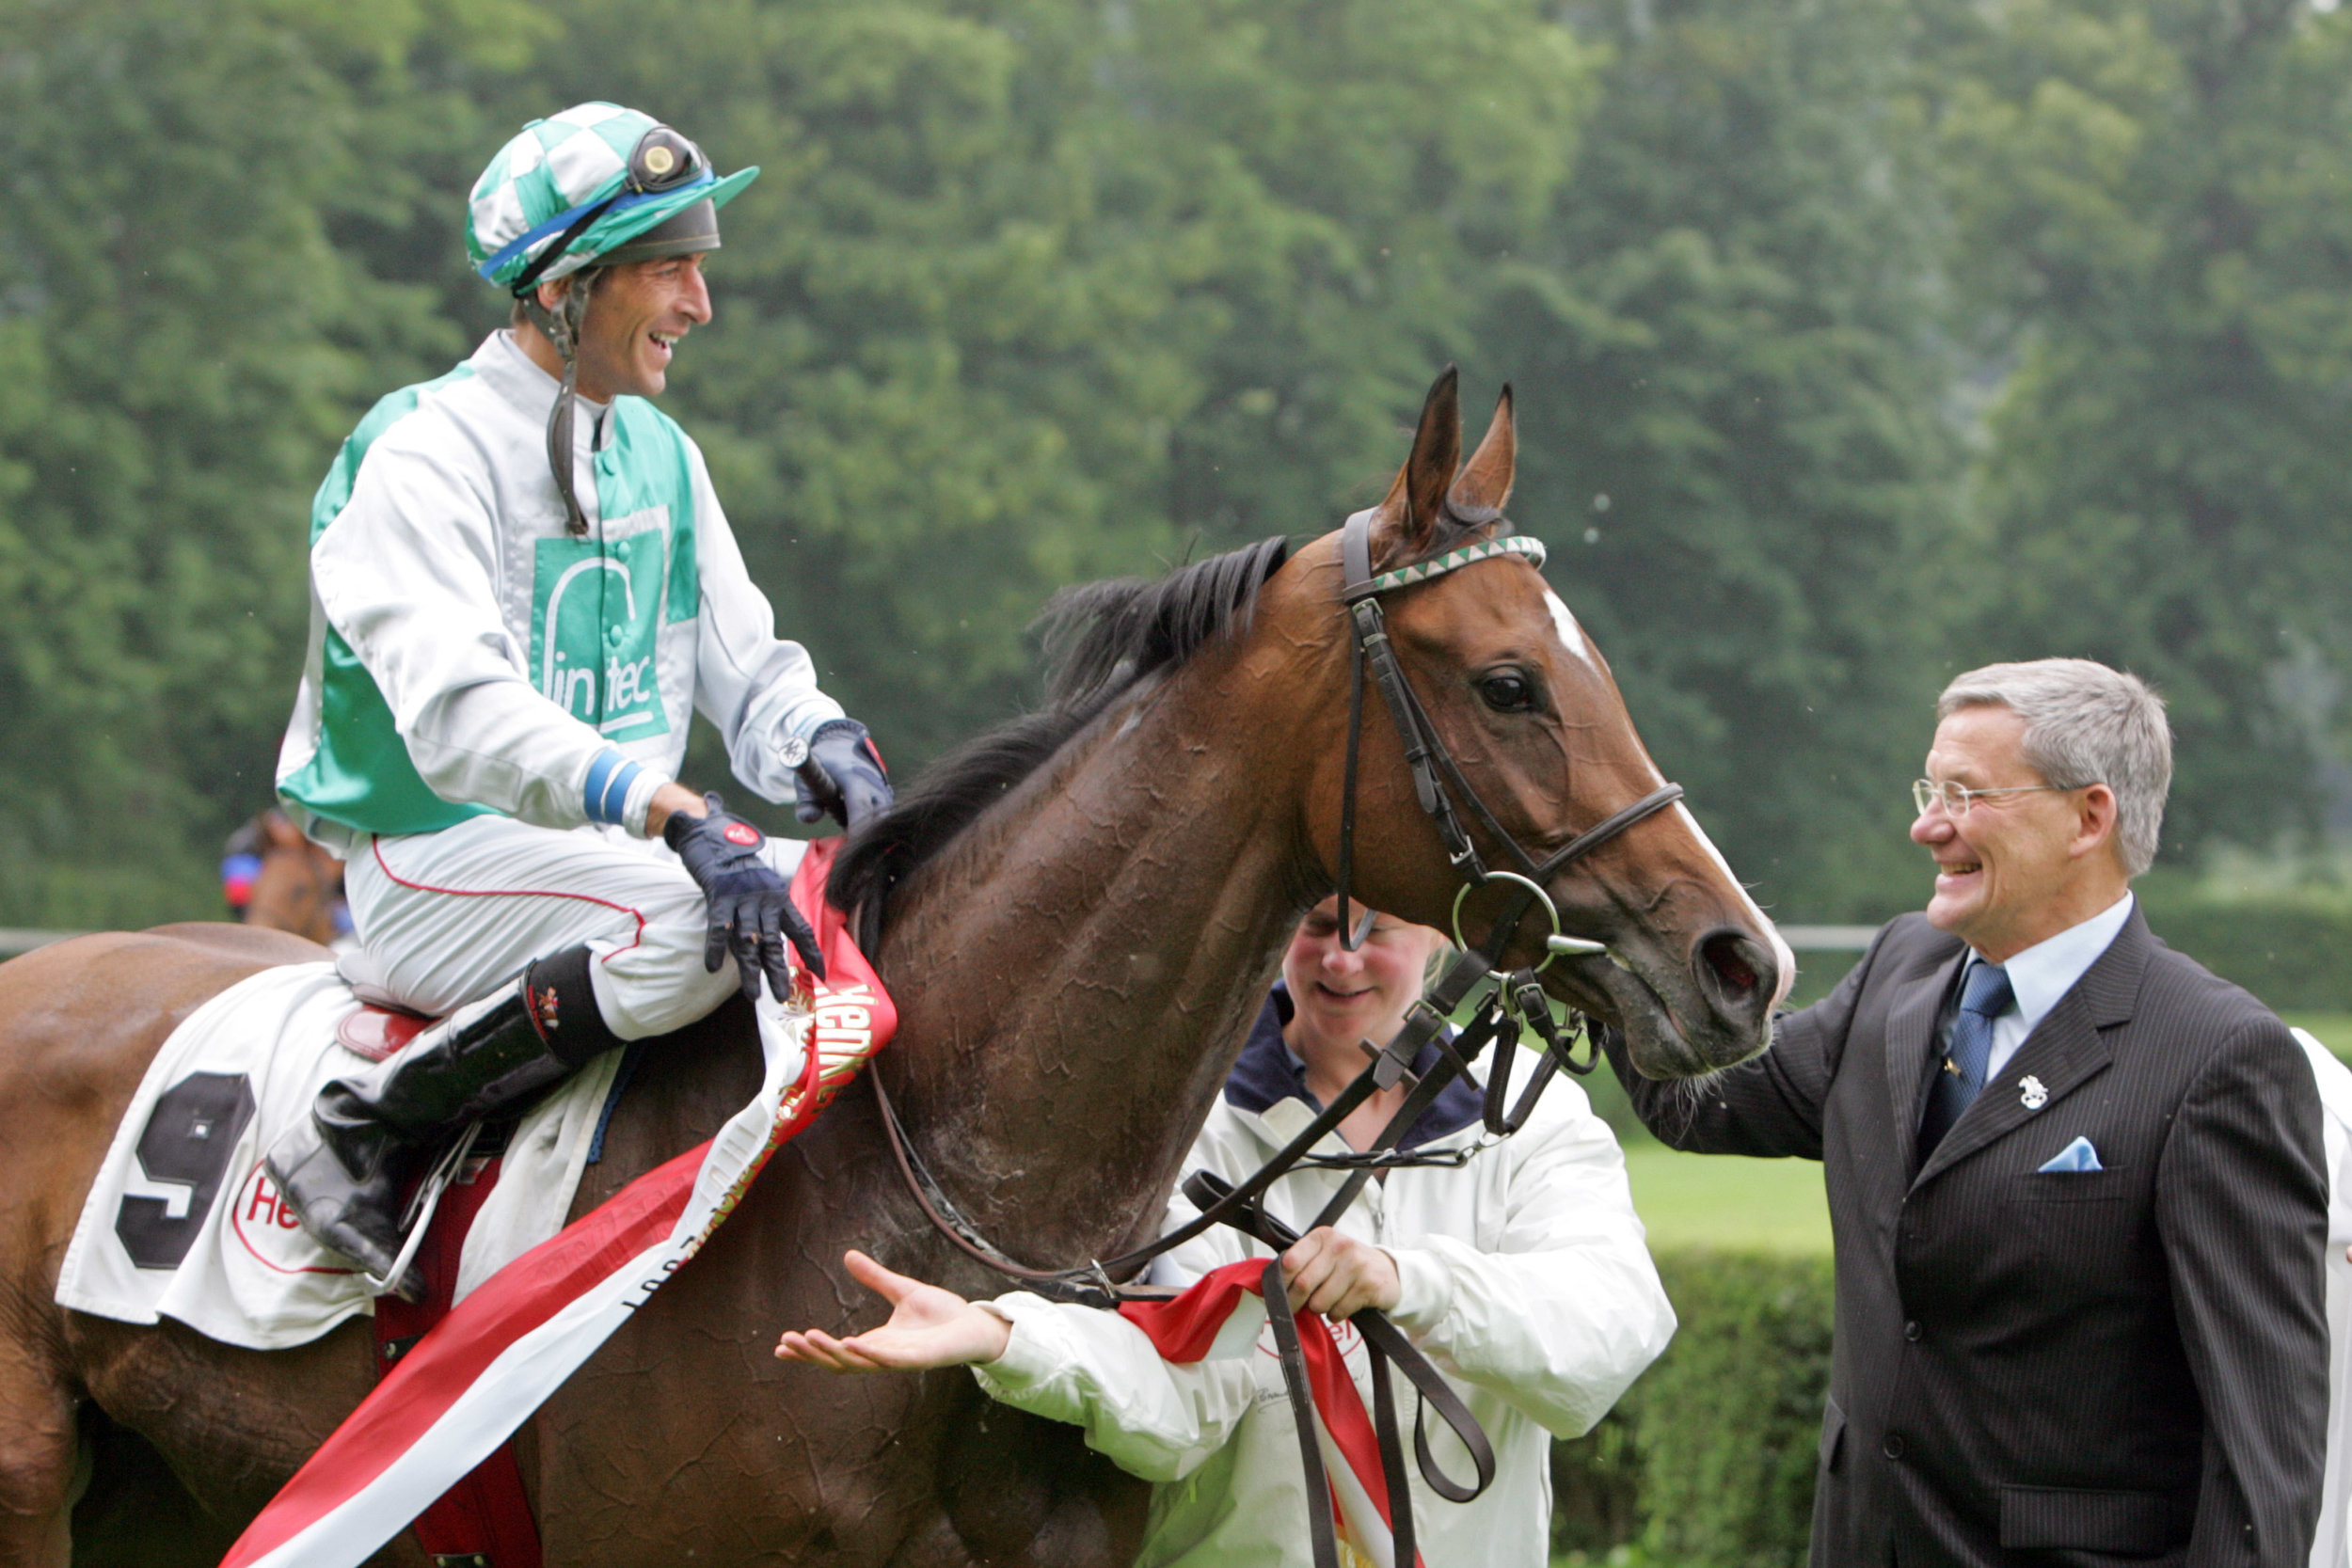 Mystic Lips with Andreas Helfenbein and trainer Andreas Löwe, after winning the Henkel Prize of Diana 2007.